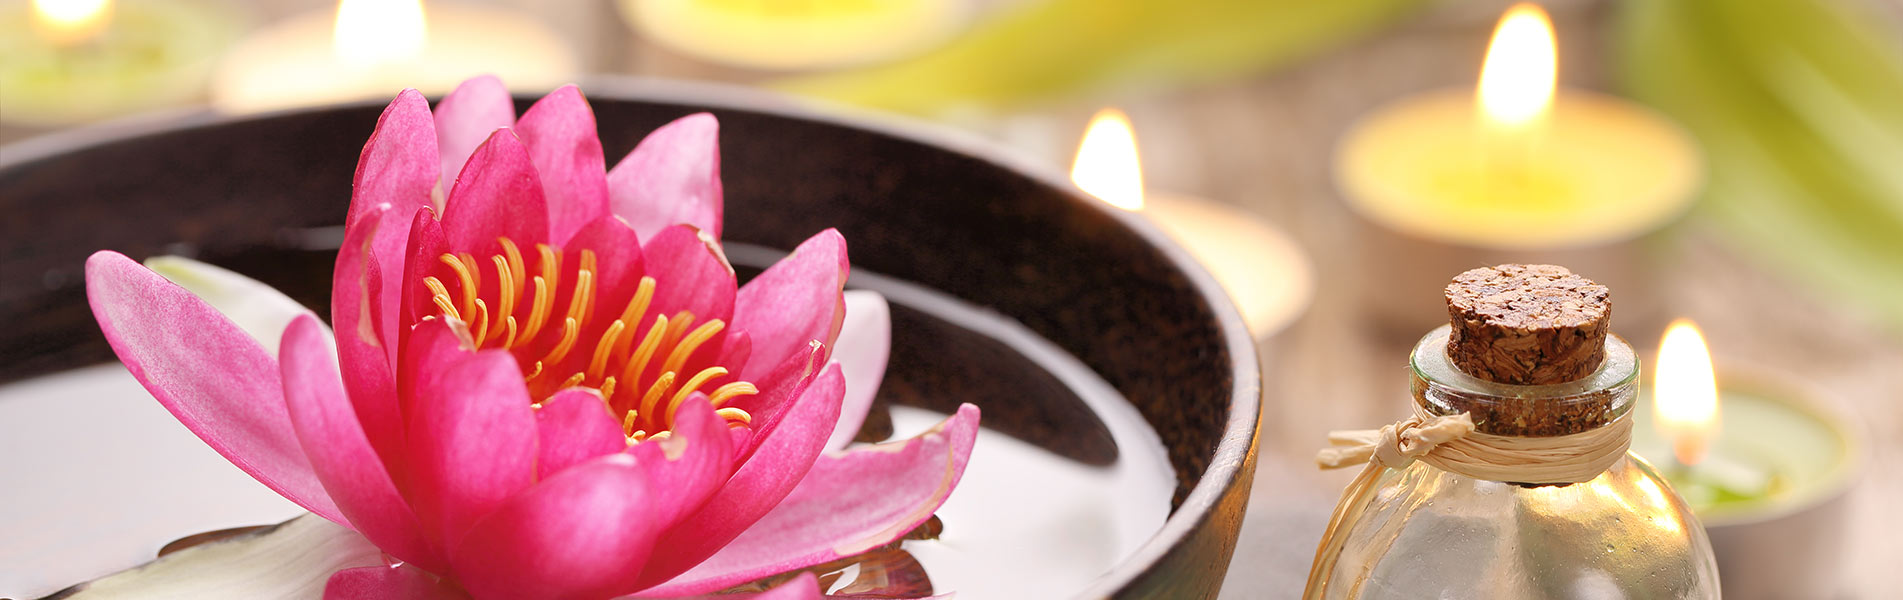 Massage Place and Spa | Massage Therapist in Torrance, CA